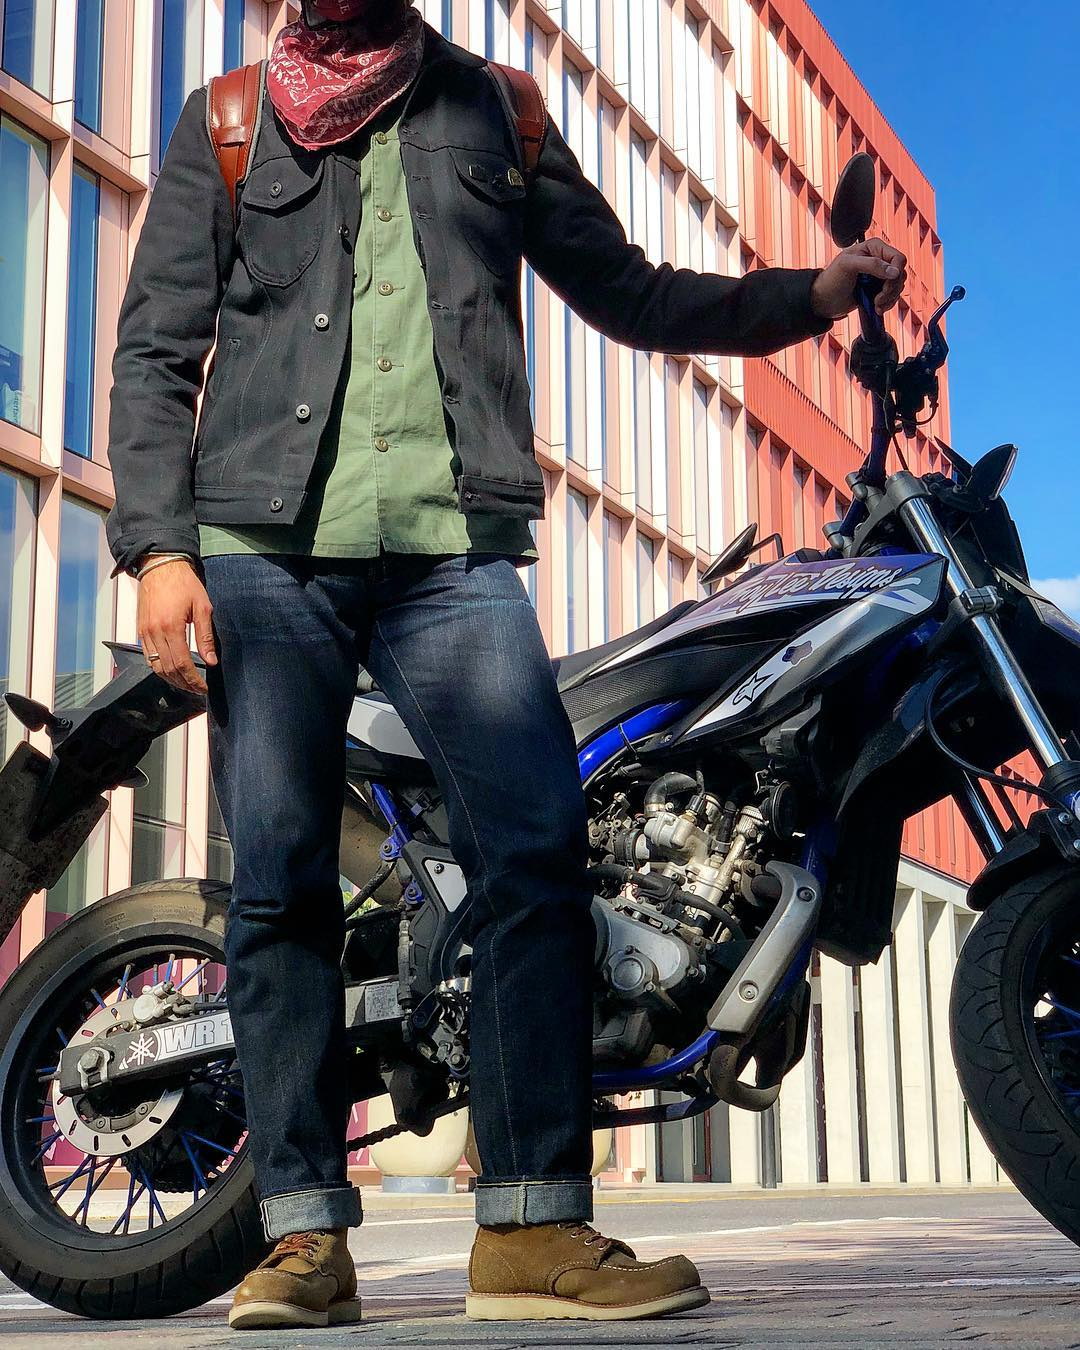 Blue Blooded, Instagrammer, illcutz, Denimhunters, motorcycle